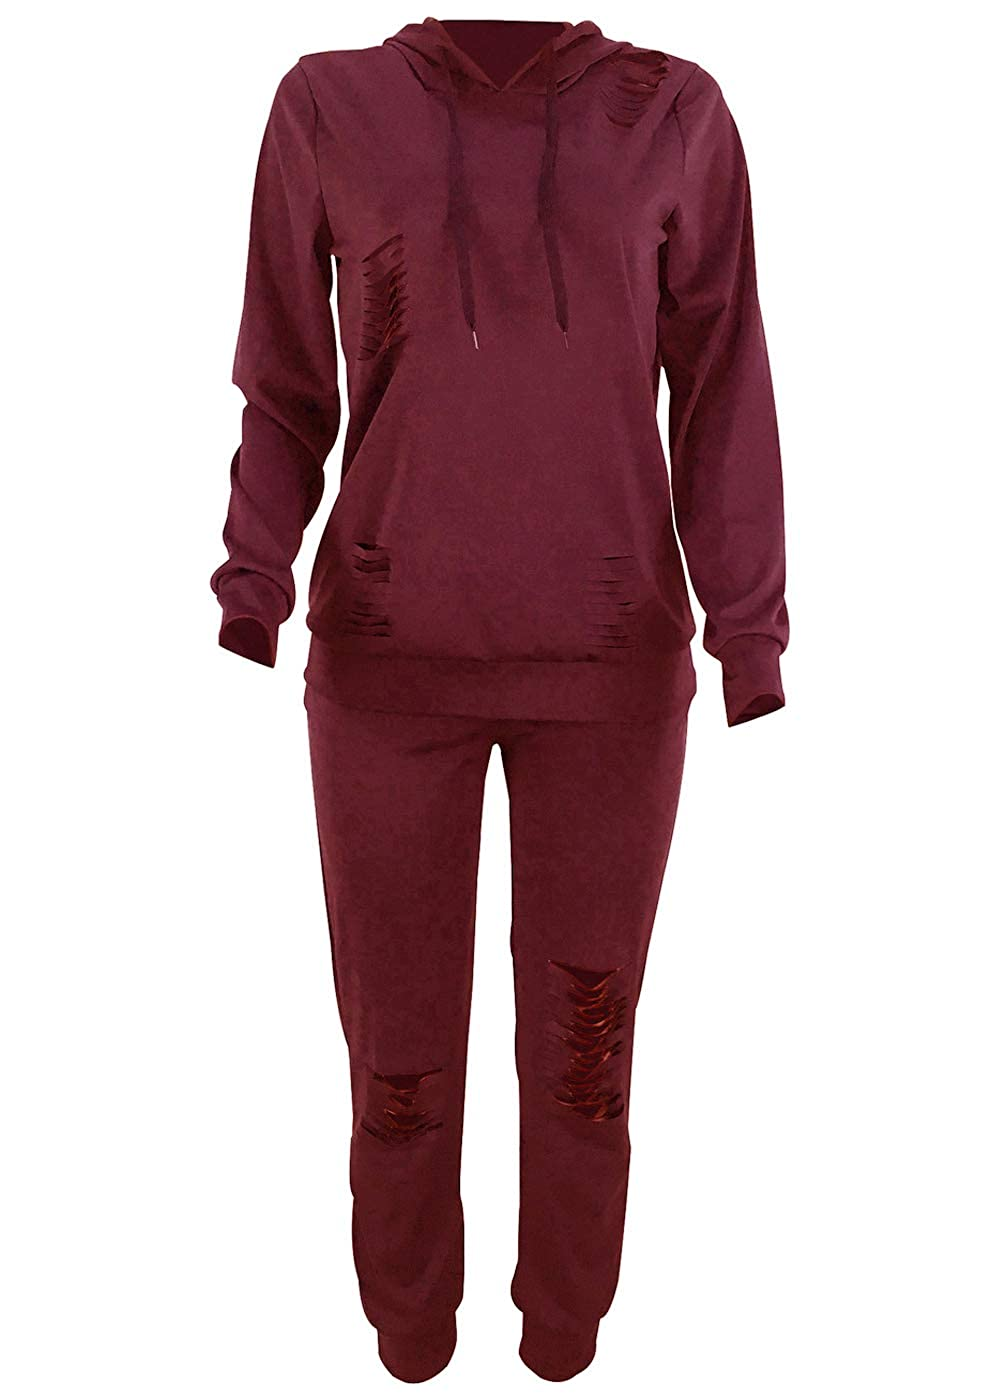 Women Casual Ripped Hole Pullover Hoodie Sweatpants 2 Piece Sport Jumpsuits Outfits Set